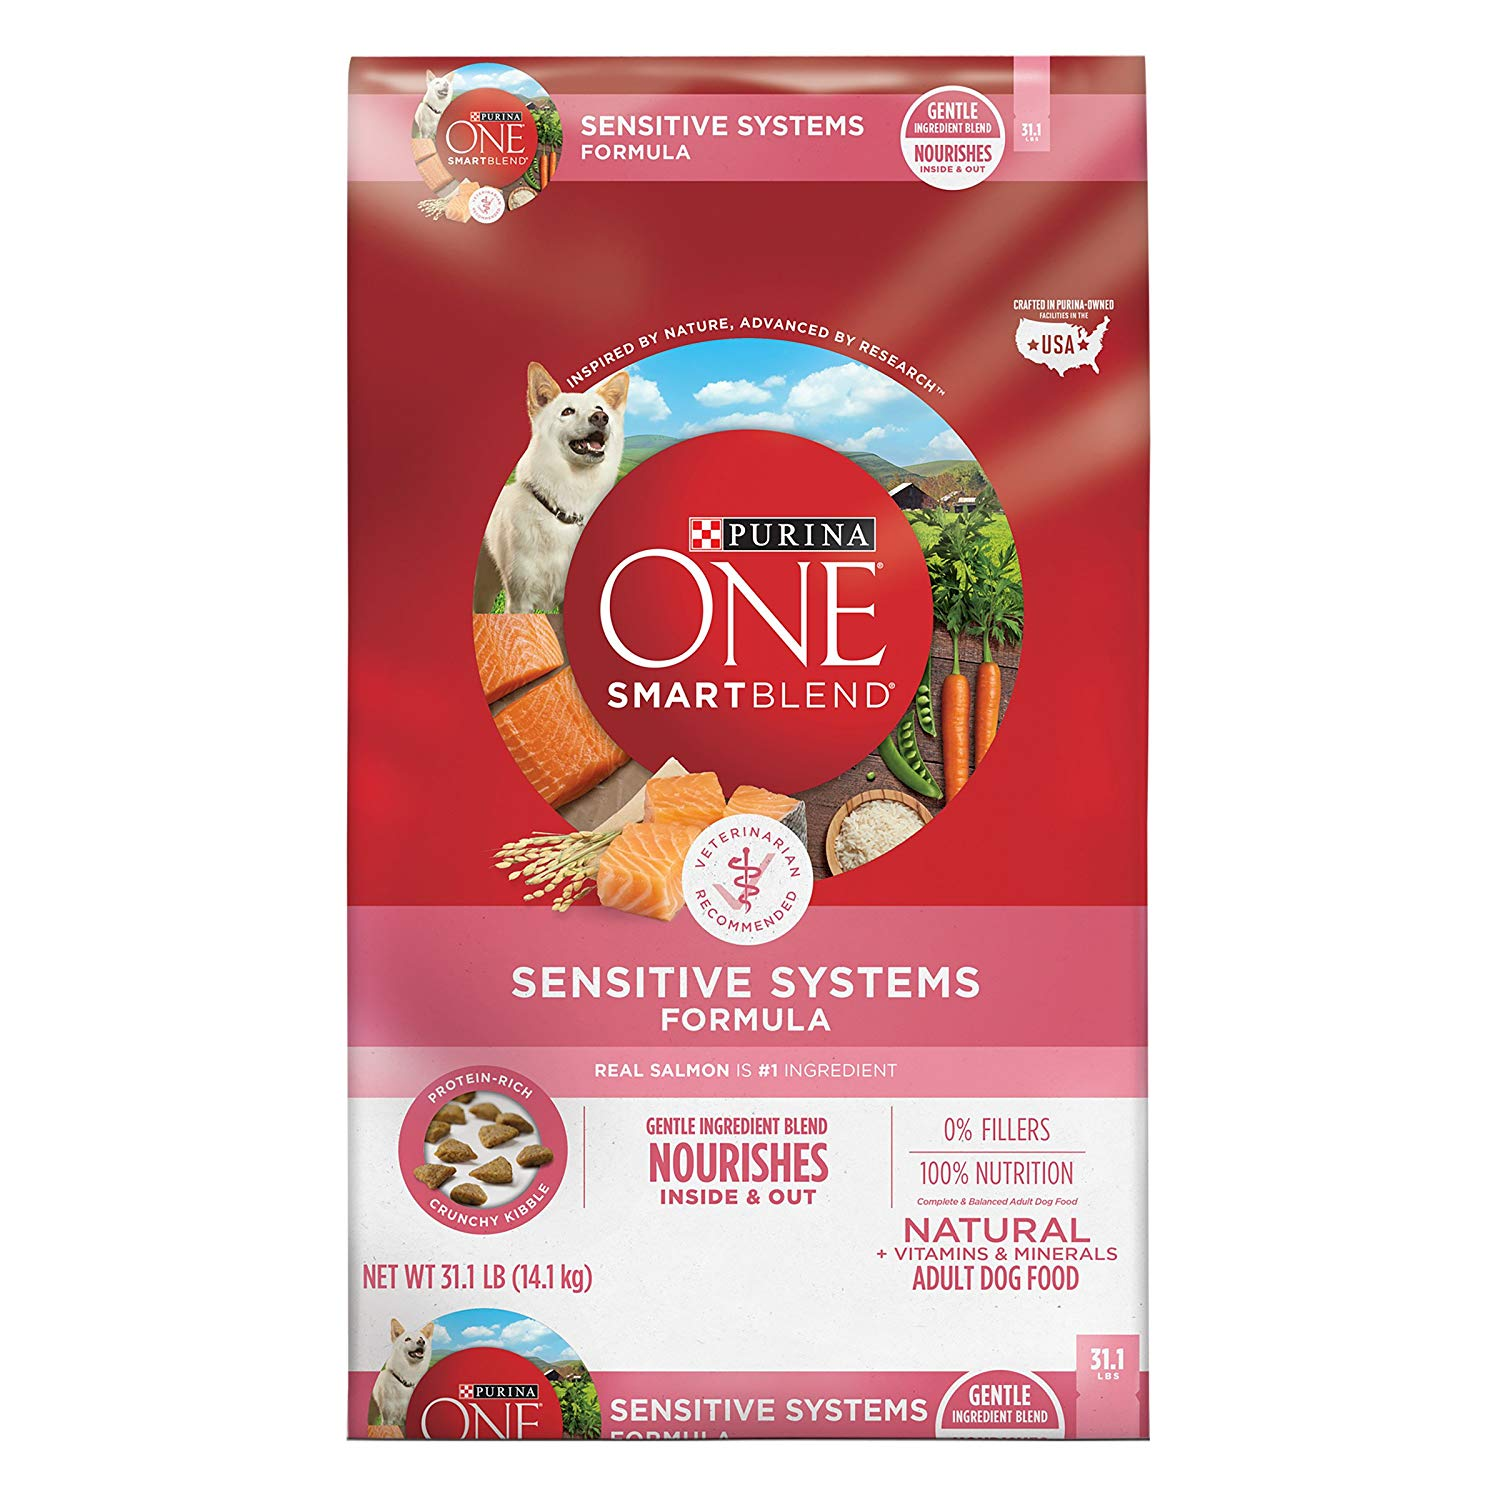 Purina ONE Smart Blend Natural Sensitive Systems Formula